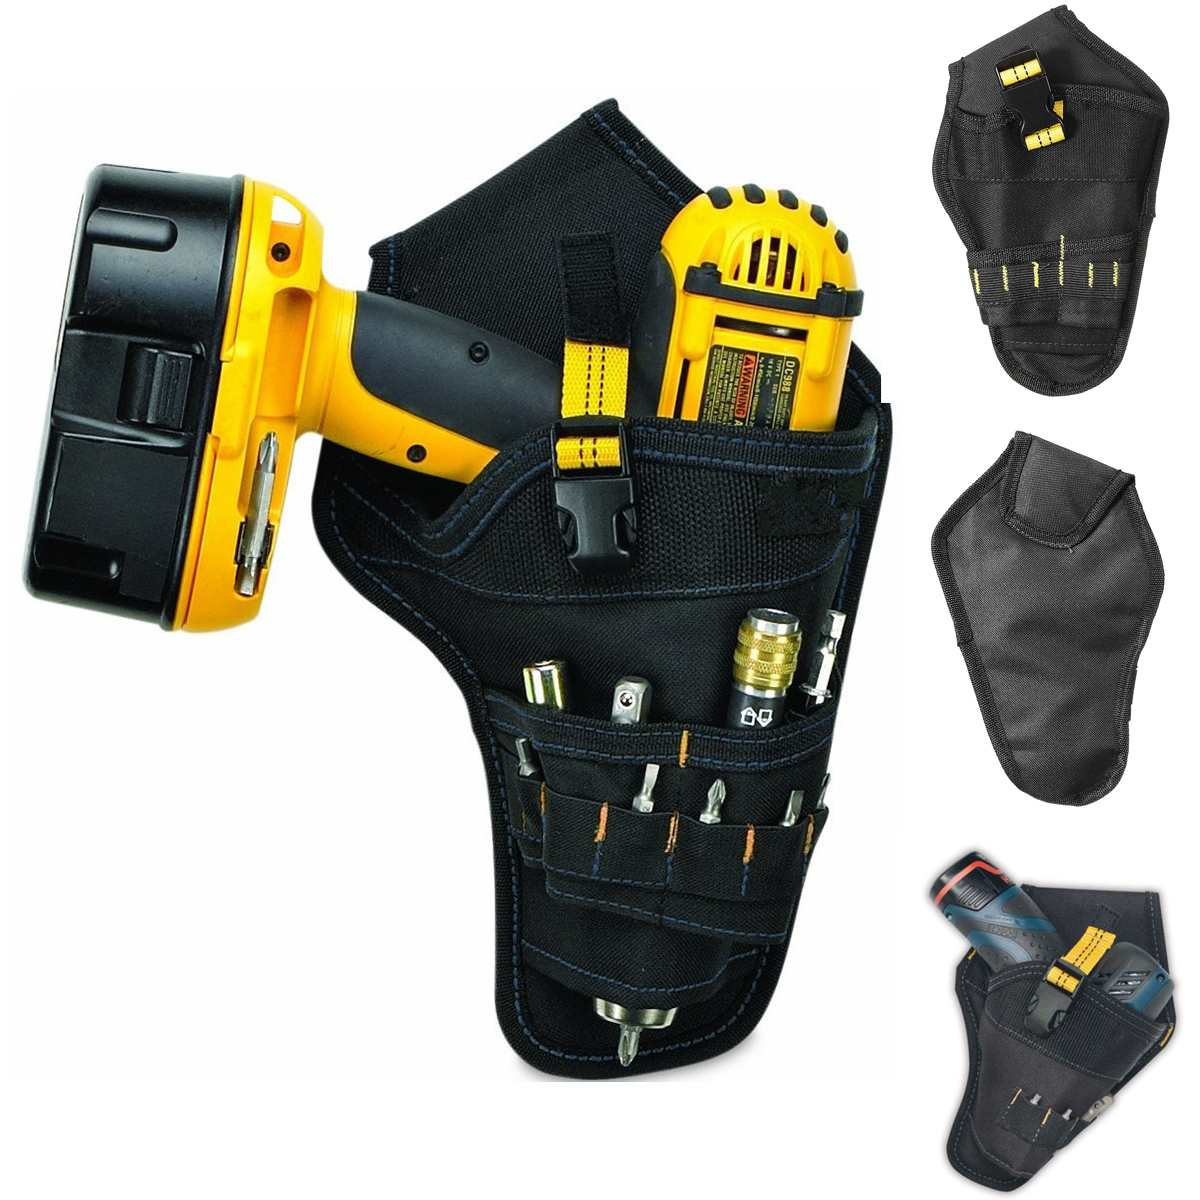 Multifunction Electrician Tool Bag Pouch For Electric Cordless Drill Holder Waist Belt Pouch Storage Bag Organizer